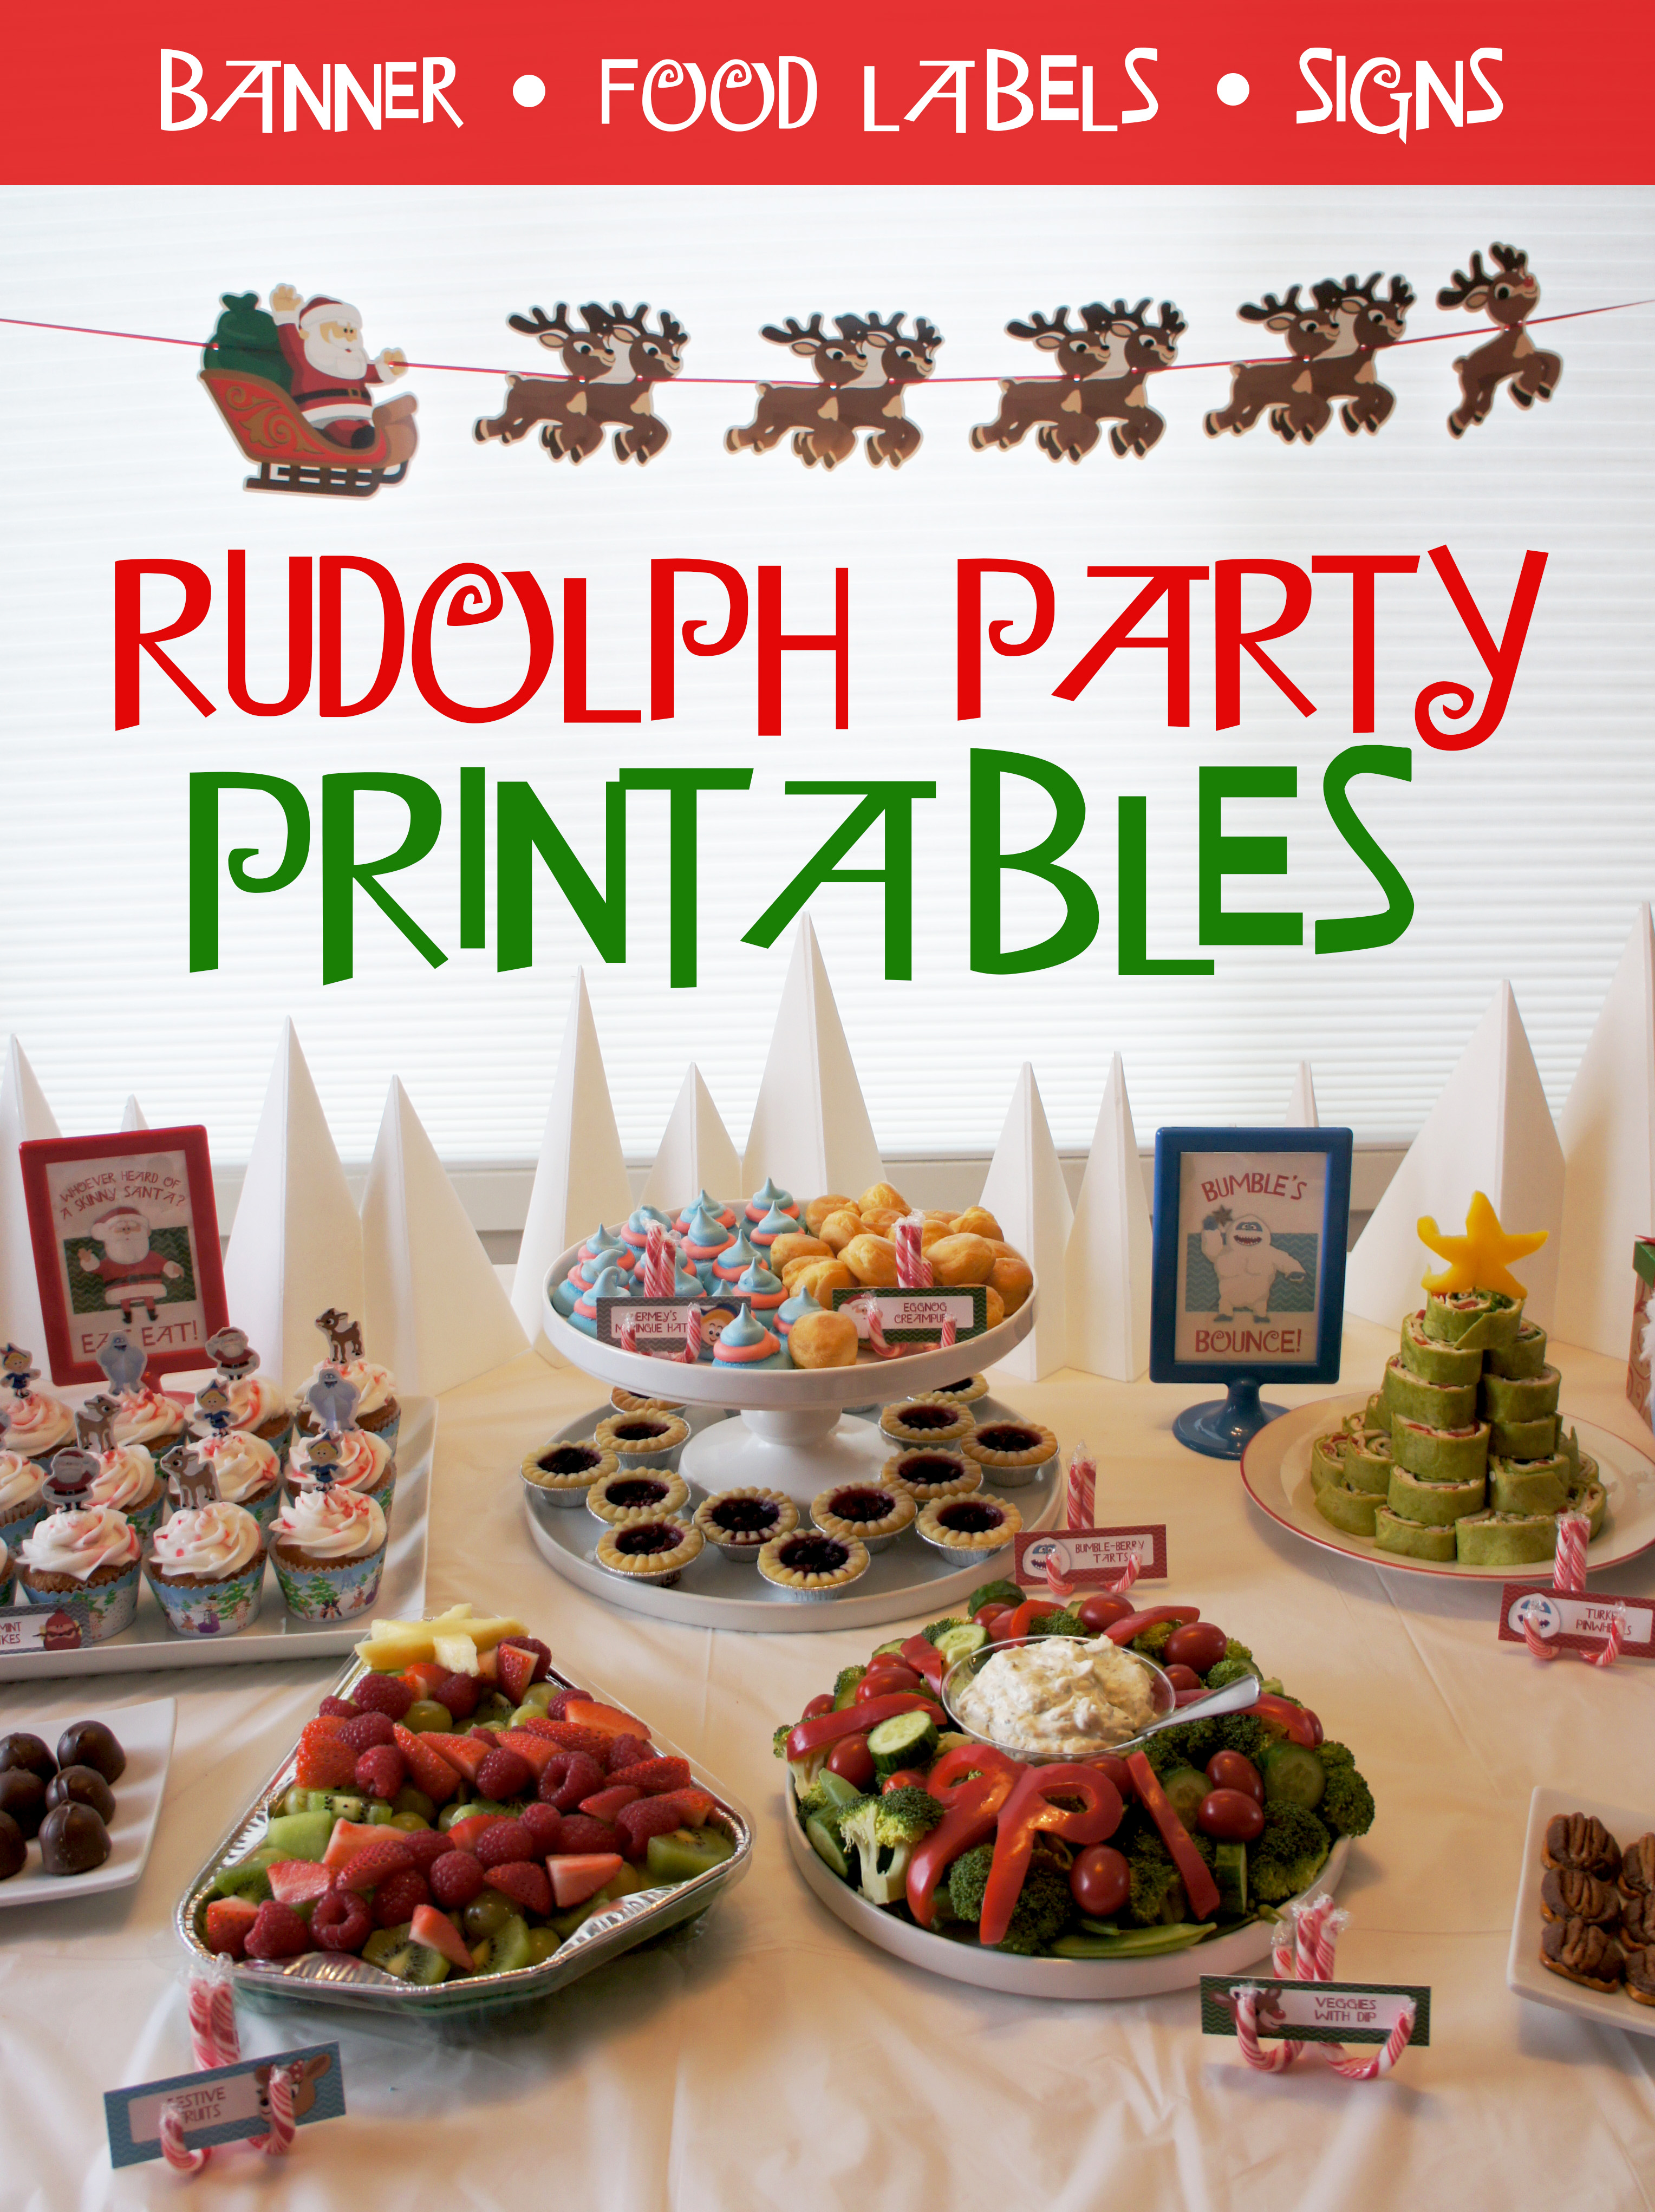 Rudolph Party Printables